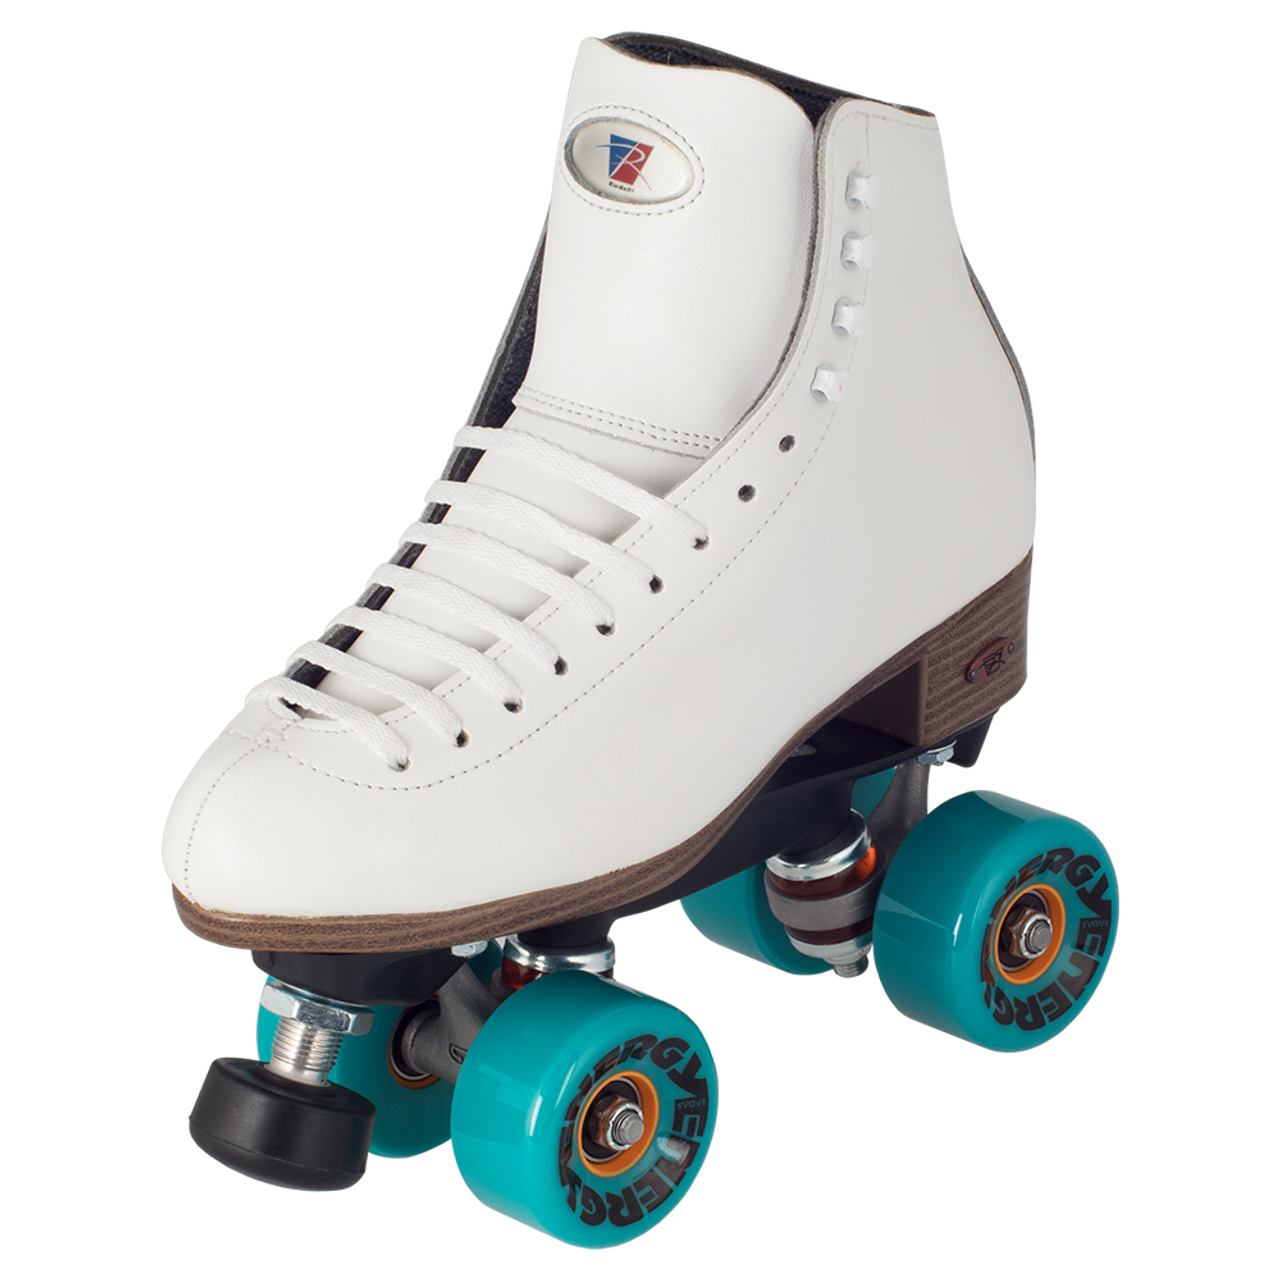 Riedell Celebrity Outdoor Skates